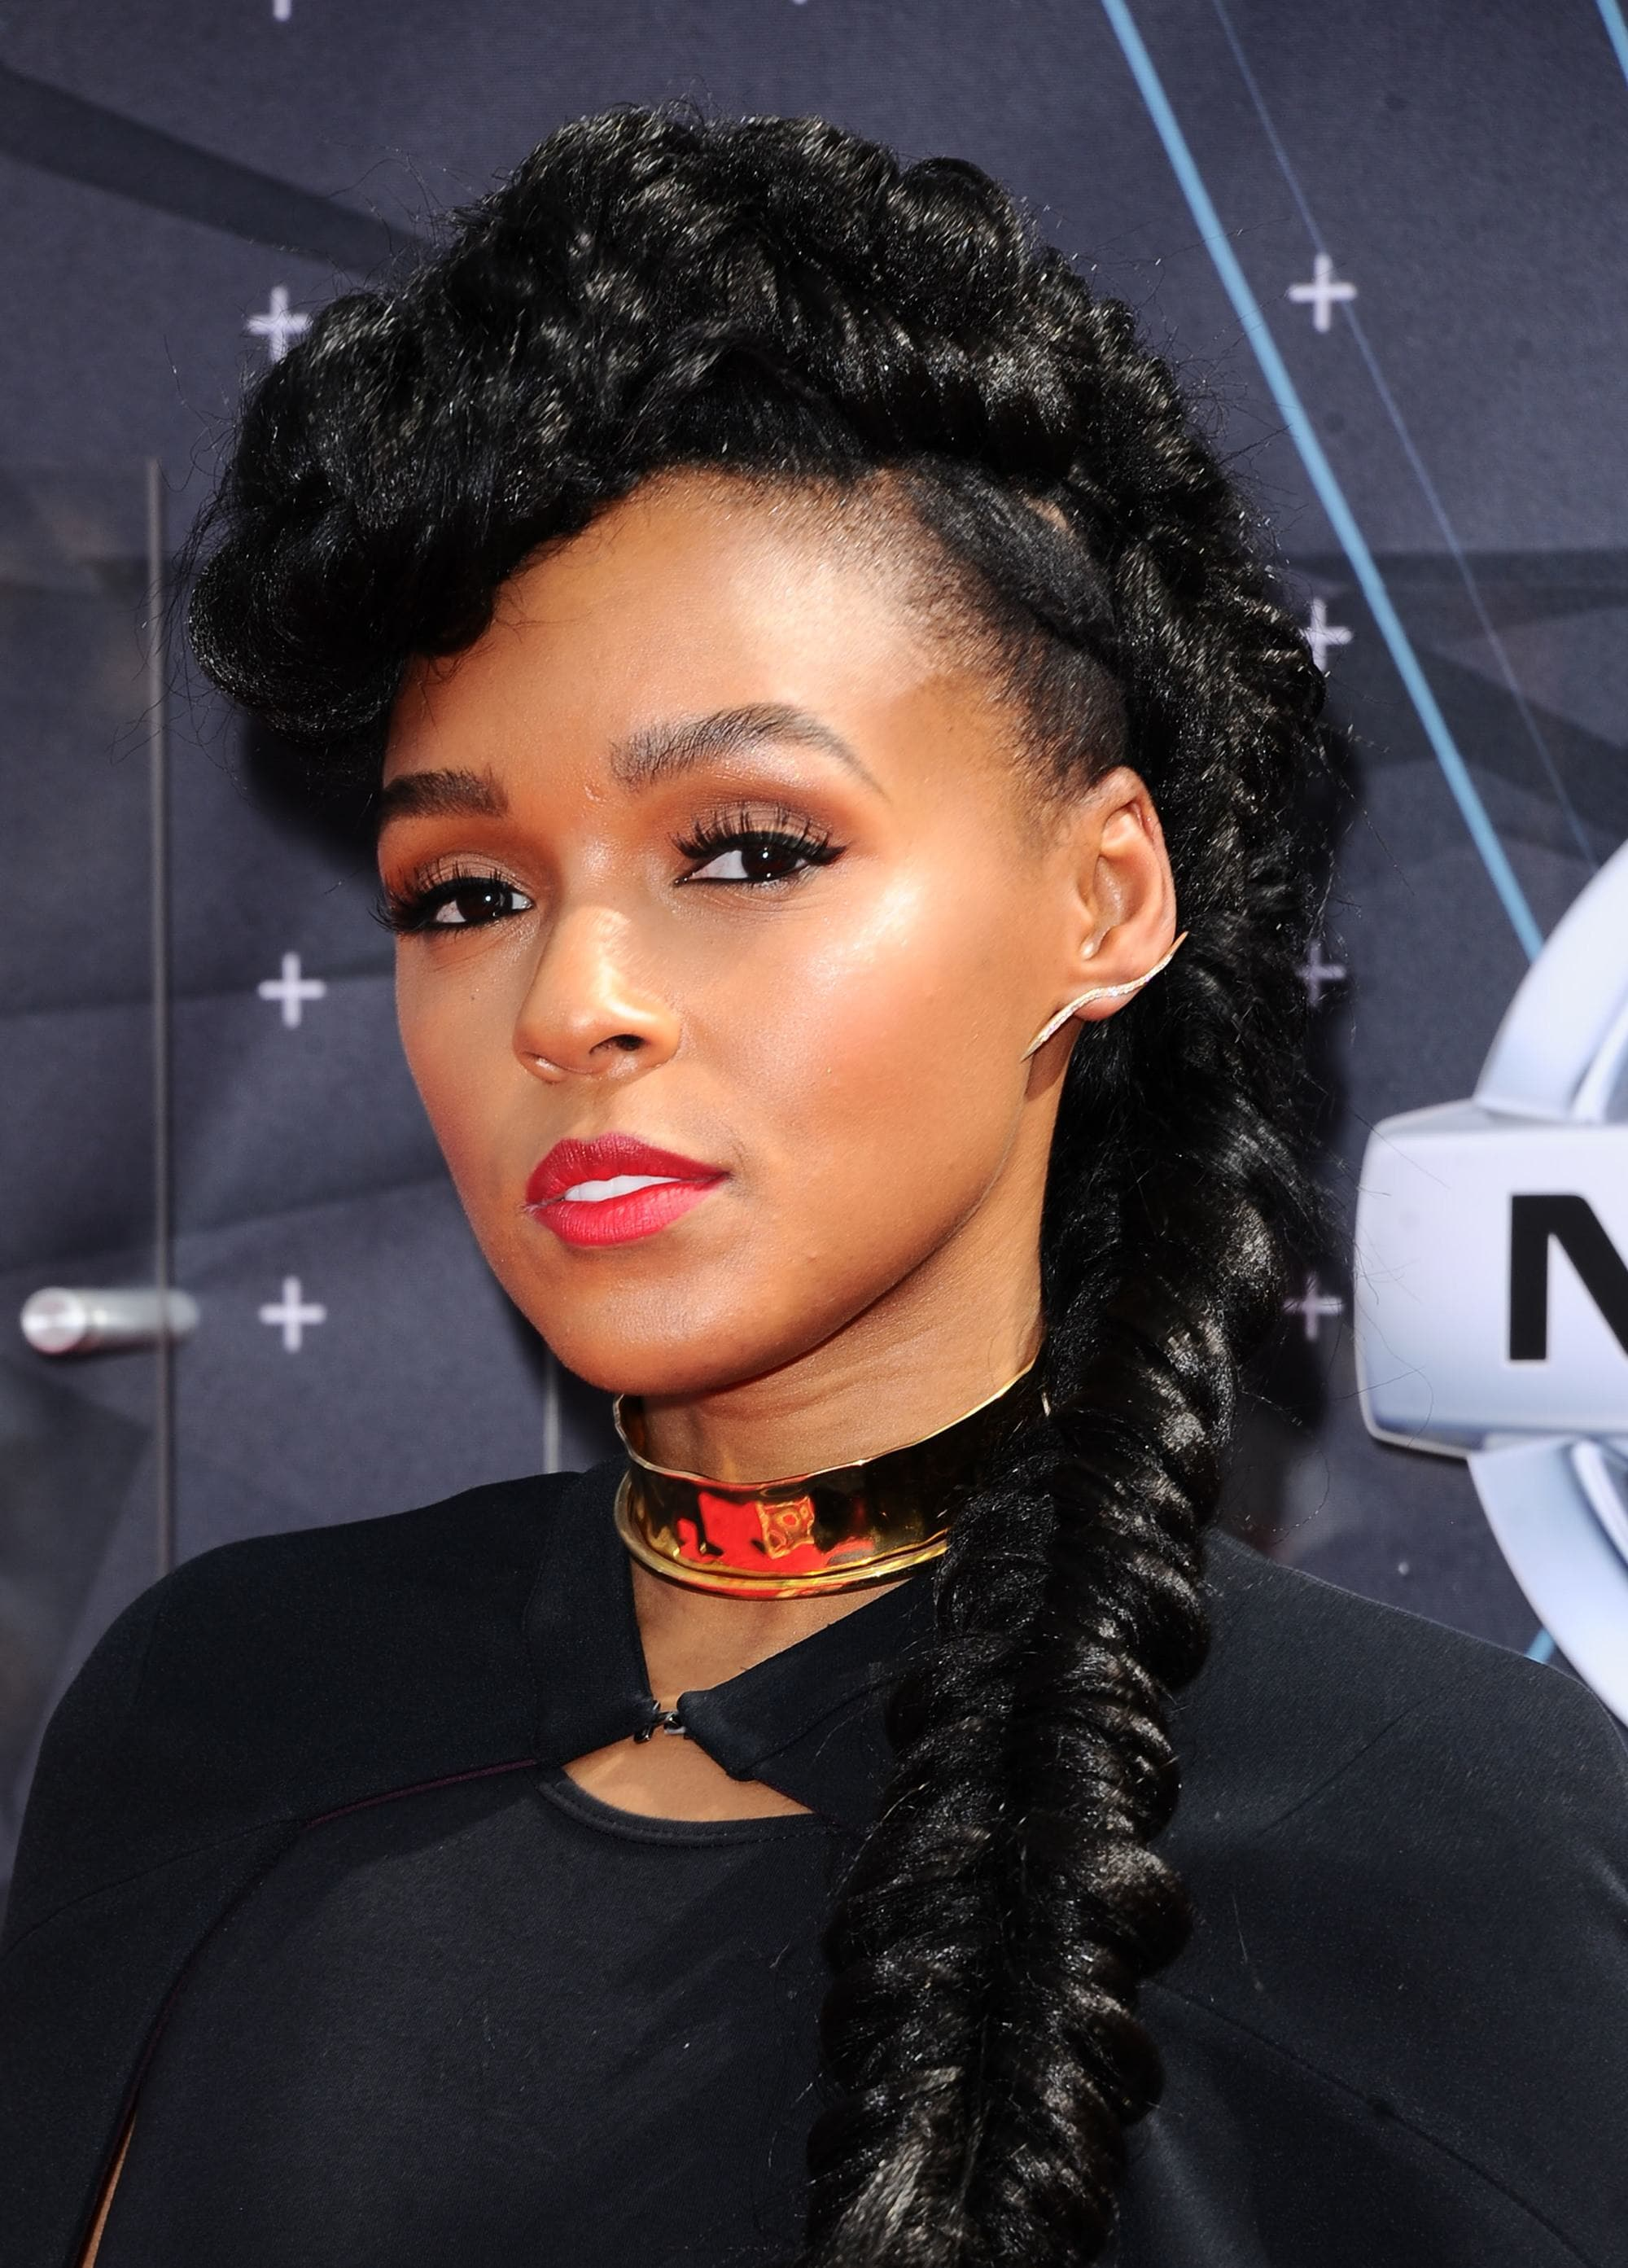 Side hairstyles: Janelle Monáe with her hair in a pomapdour style long side braid